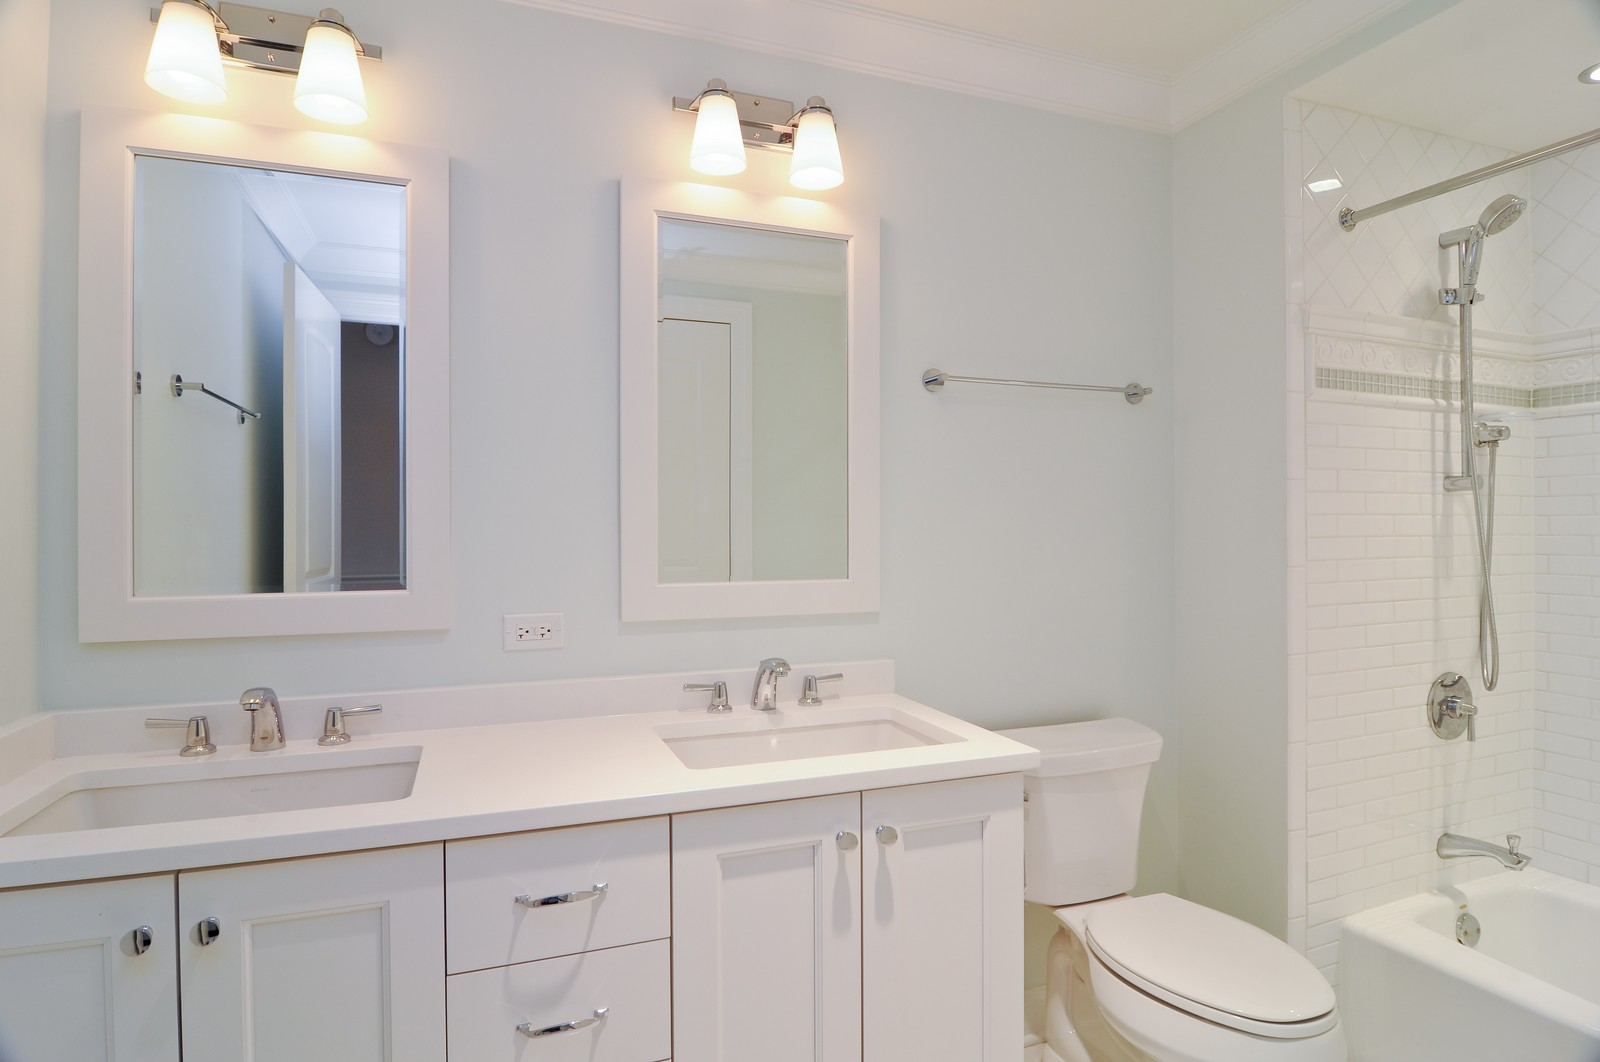 Real Estate Photography - 3845 N Paulina St, Chicago, IL, 60613 - Kids Bathroom